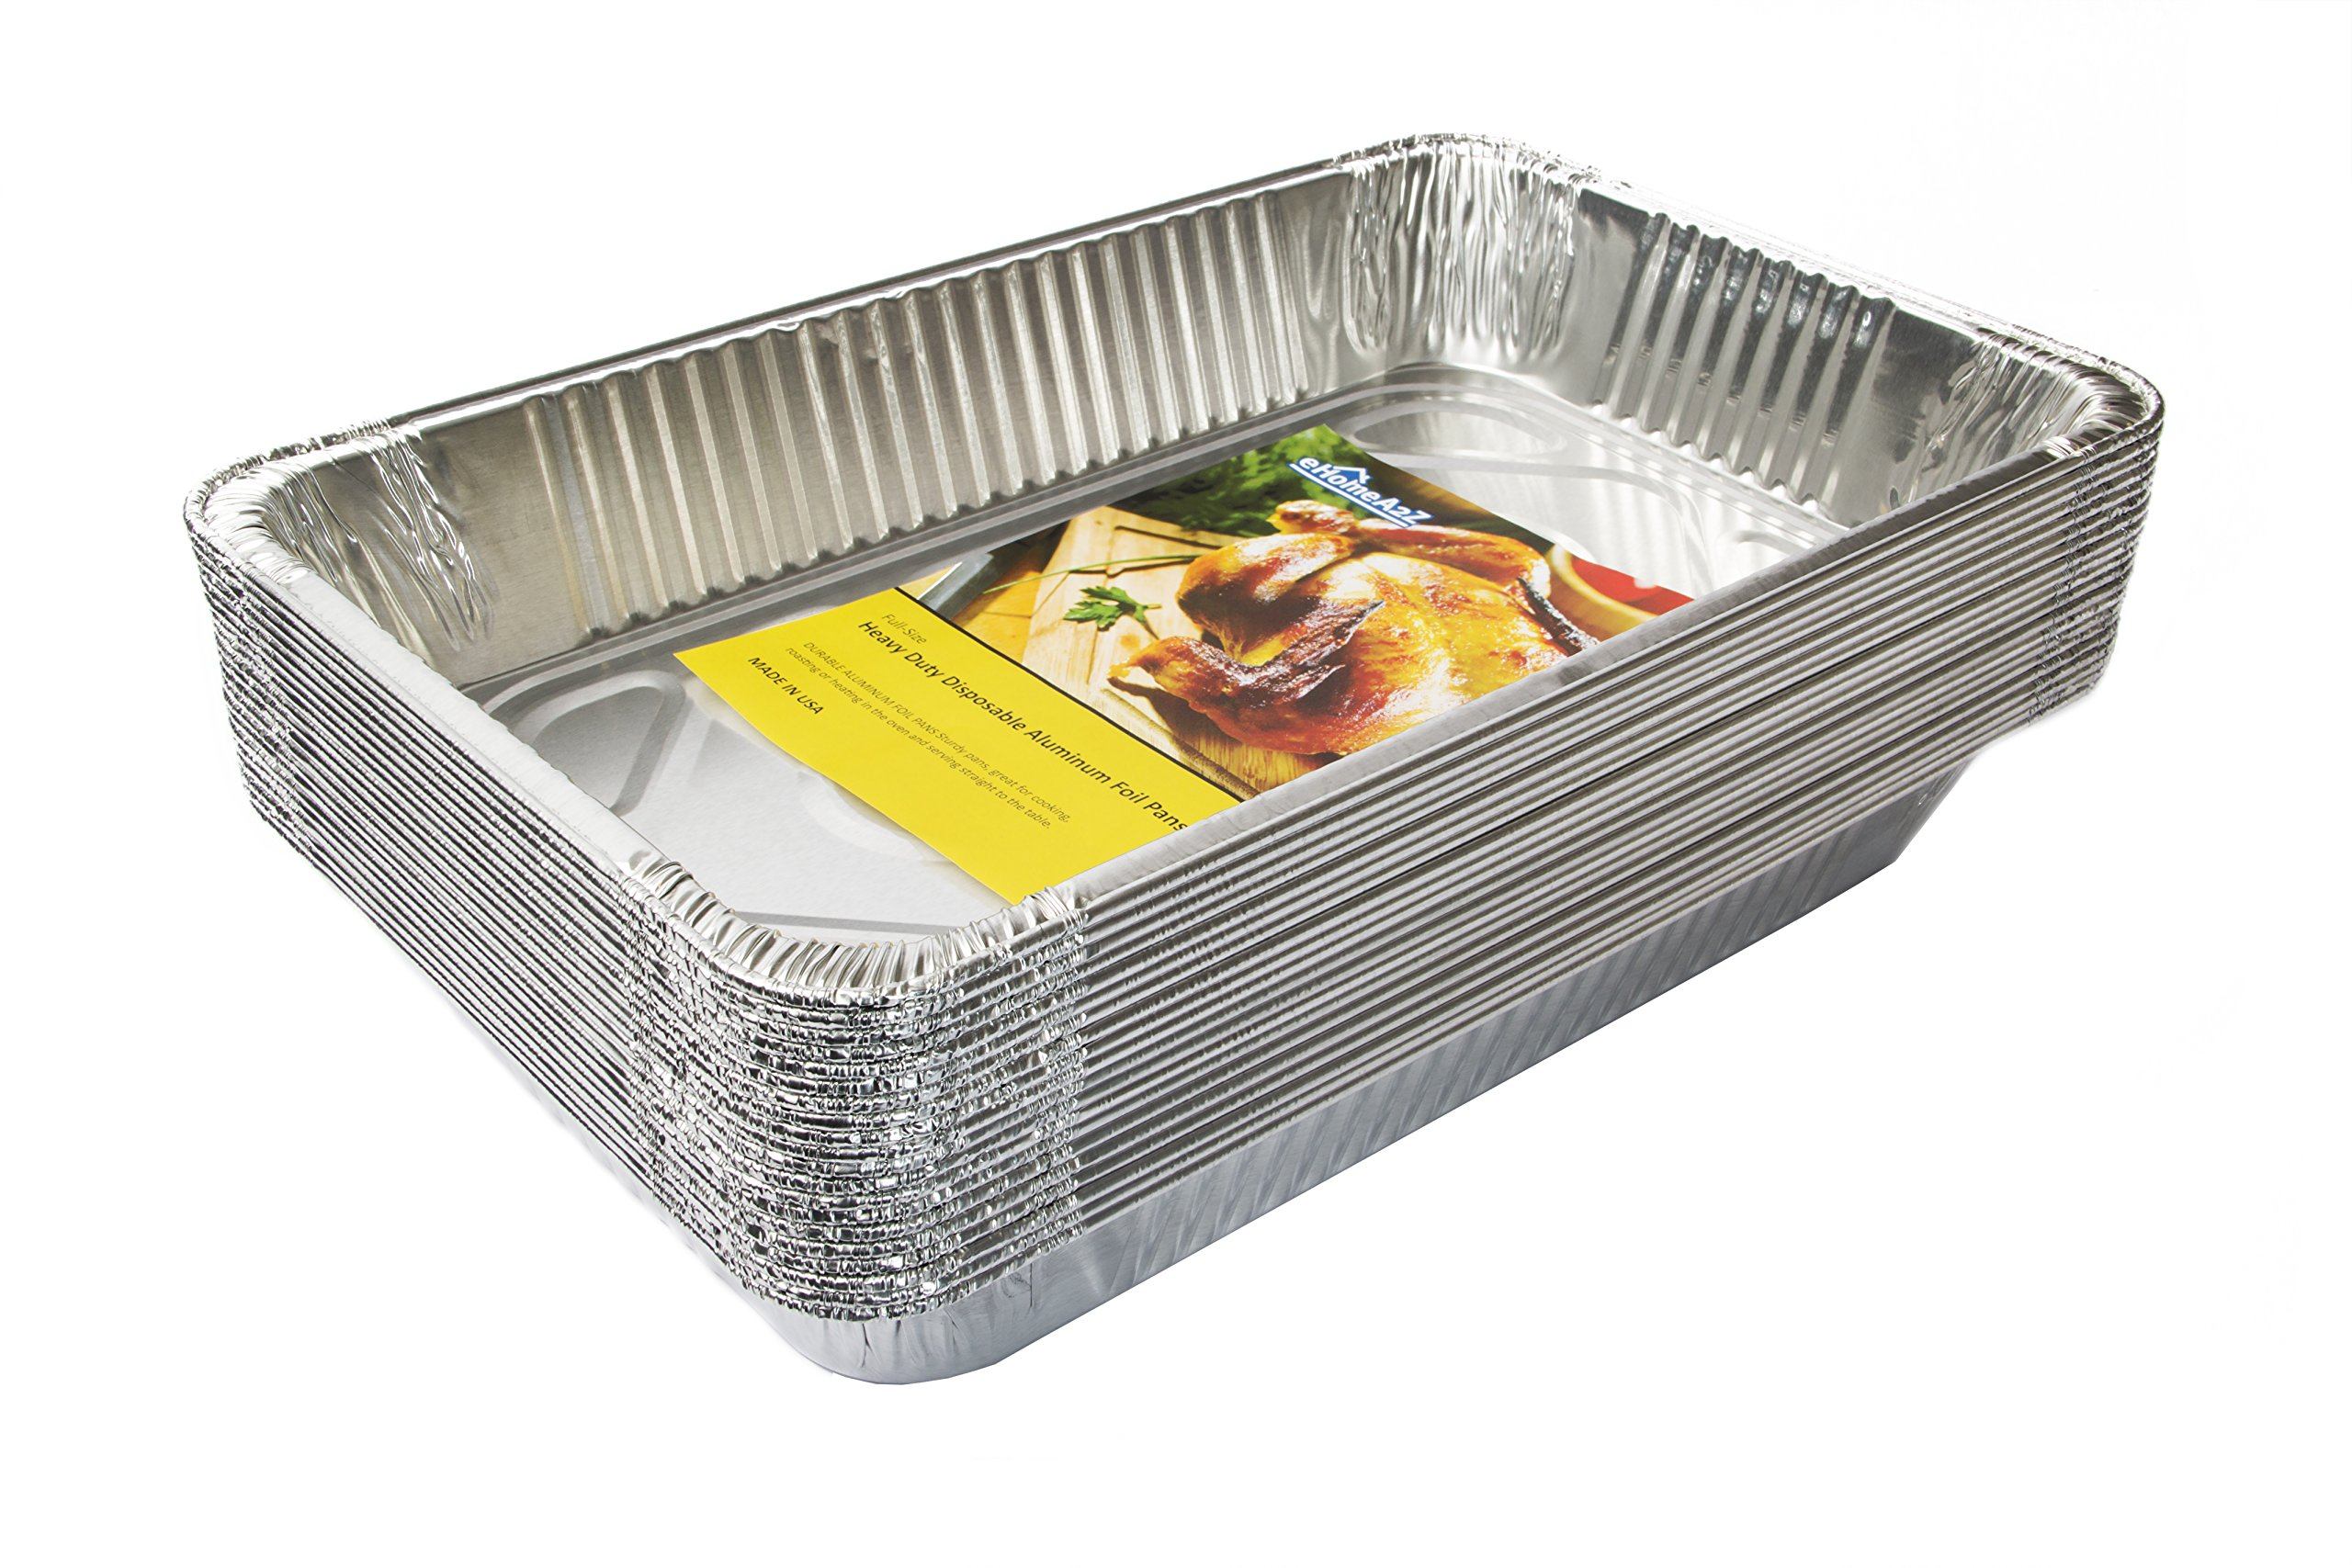 eHomeA2Z (20 Pack) Heavy Duty Full-Size Deep Disposable Aluminum Foil Steam Table Pans for Cooking, Roasting, Broiling, Baking - 21 x 13 x 3 (20, Full-Size)